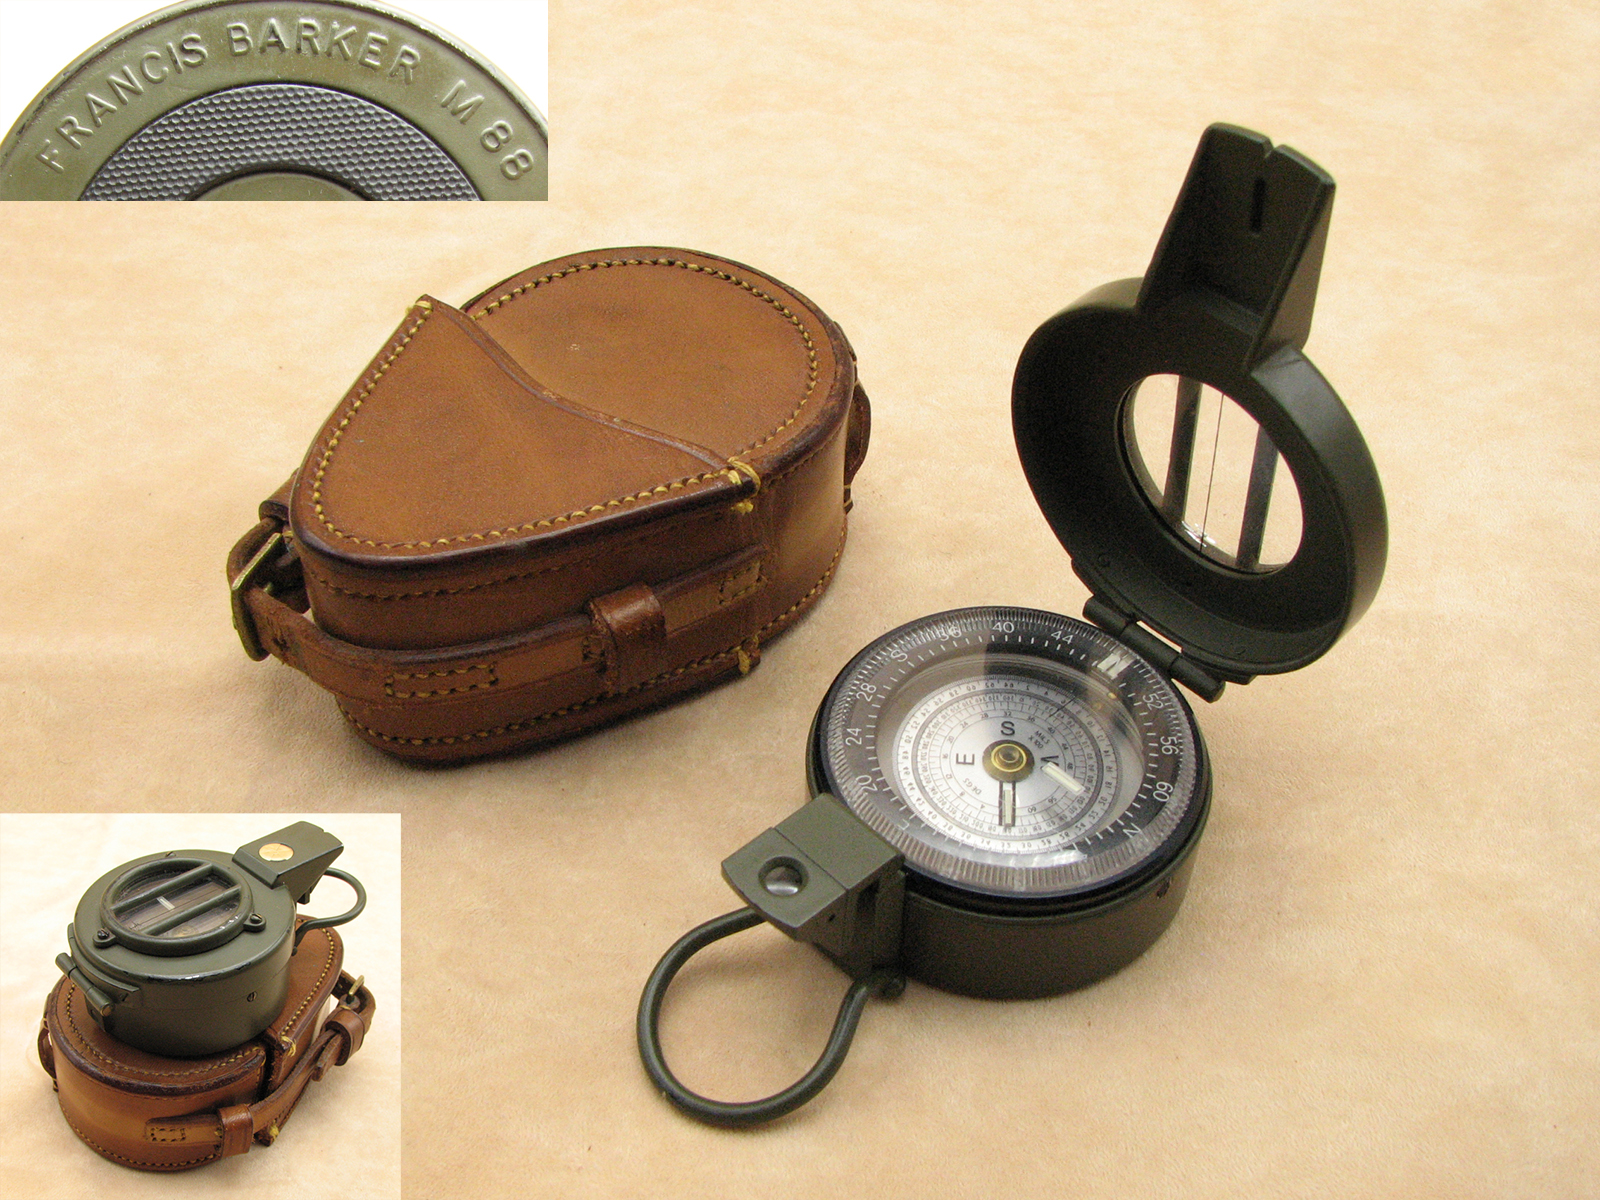 Francis Barker M88 military prismatic compass with dual use dial in leather case